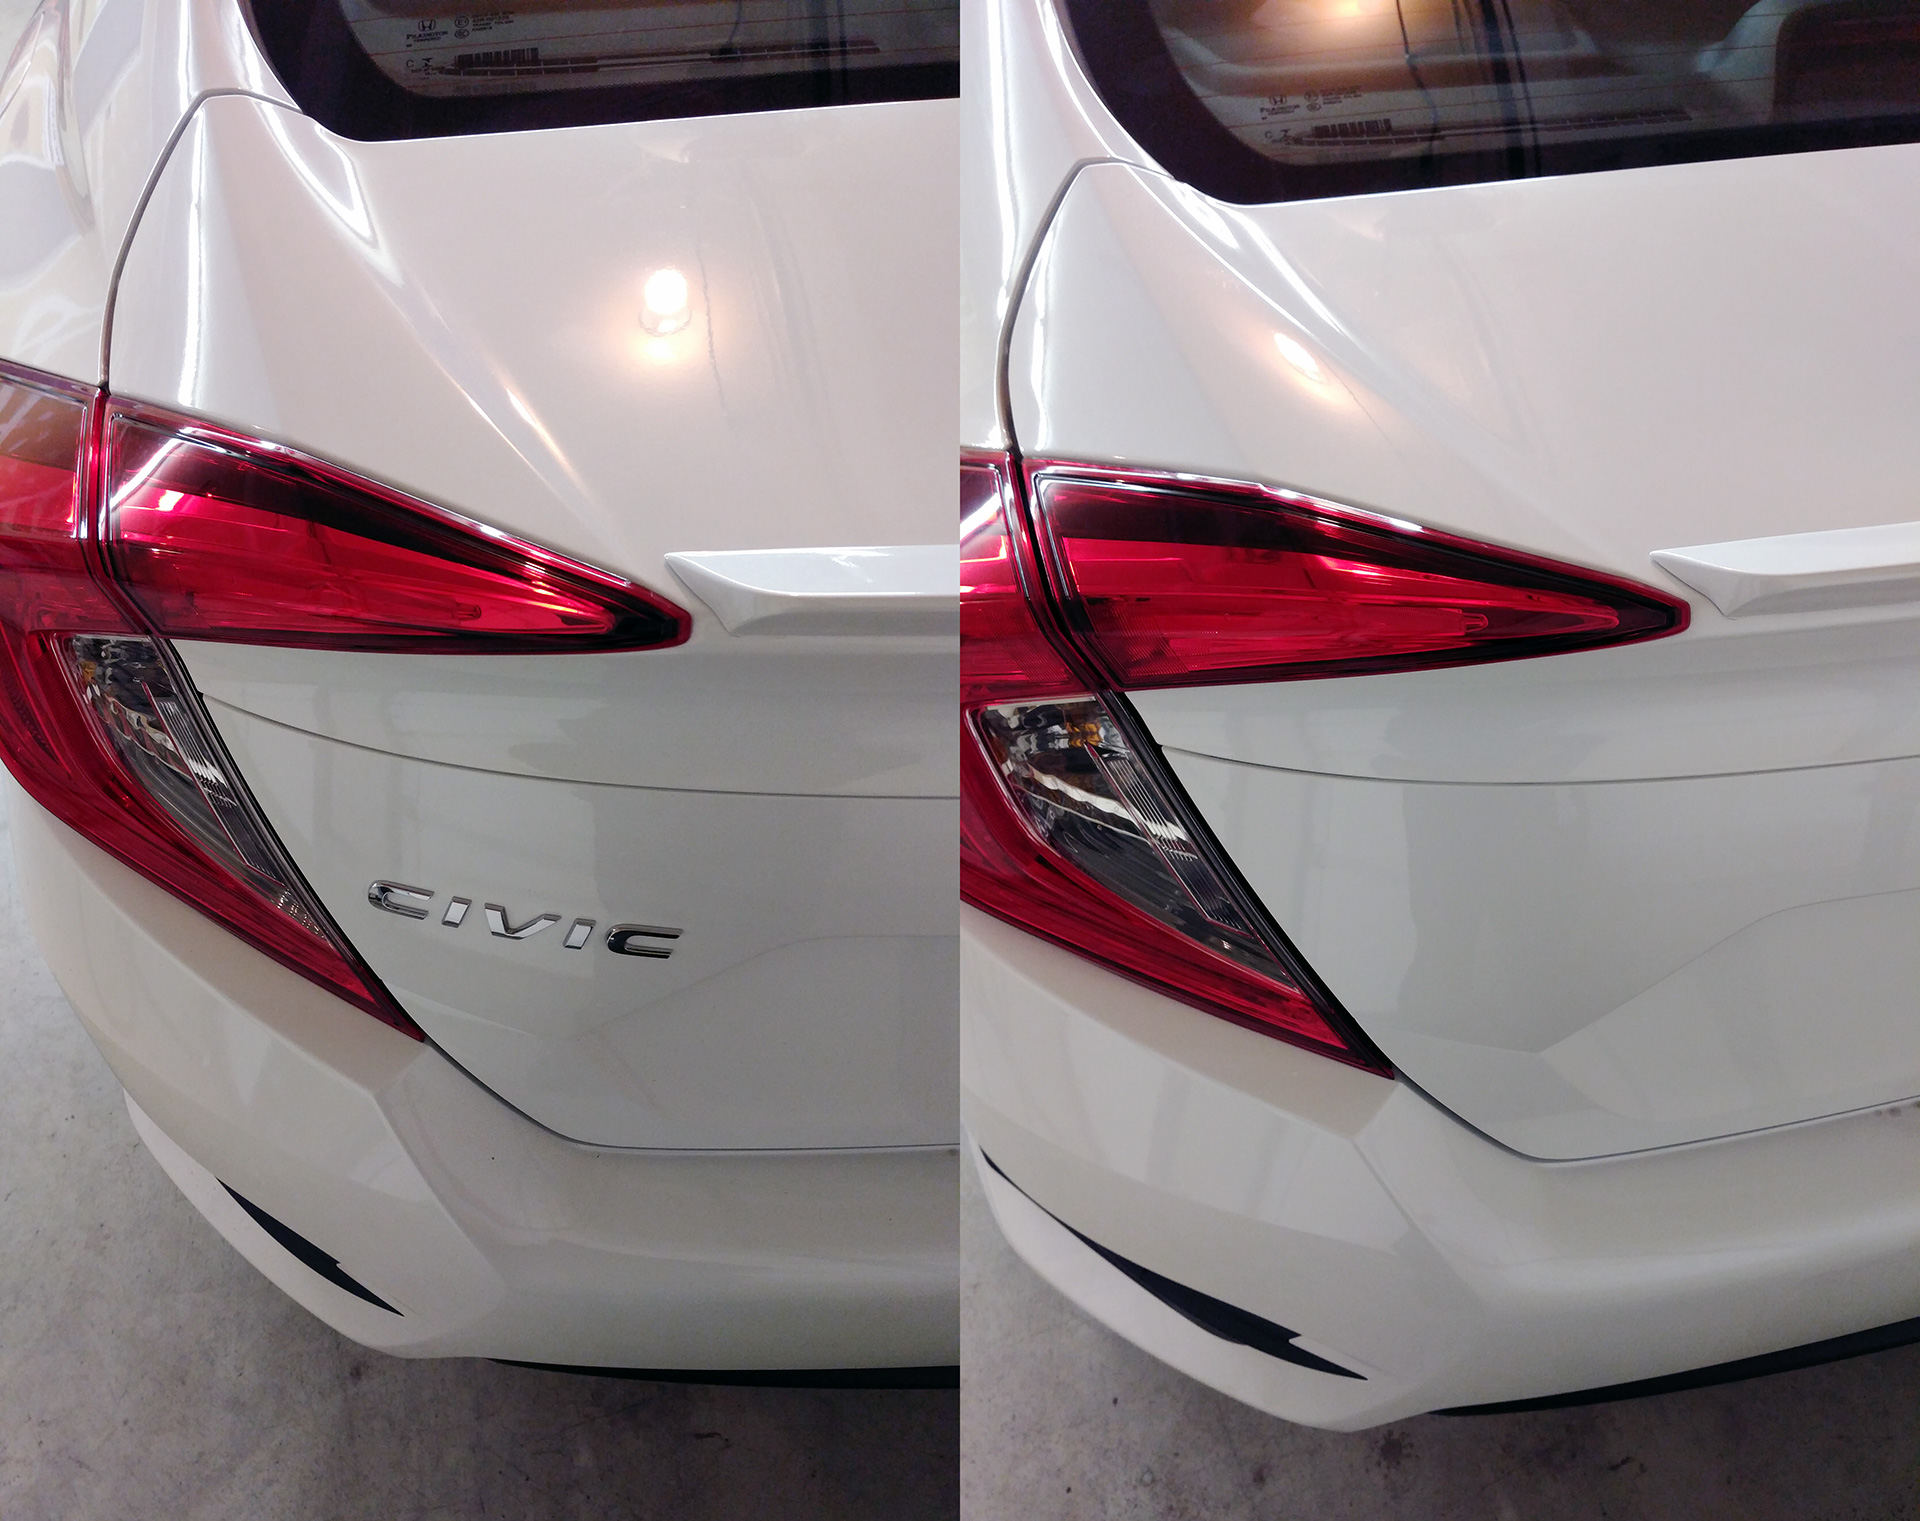 Debadging Removing The Model Emblem From My 2017 Honda Civic The